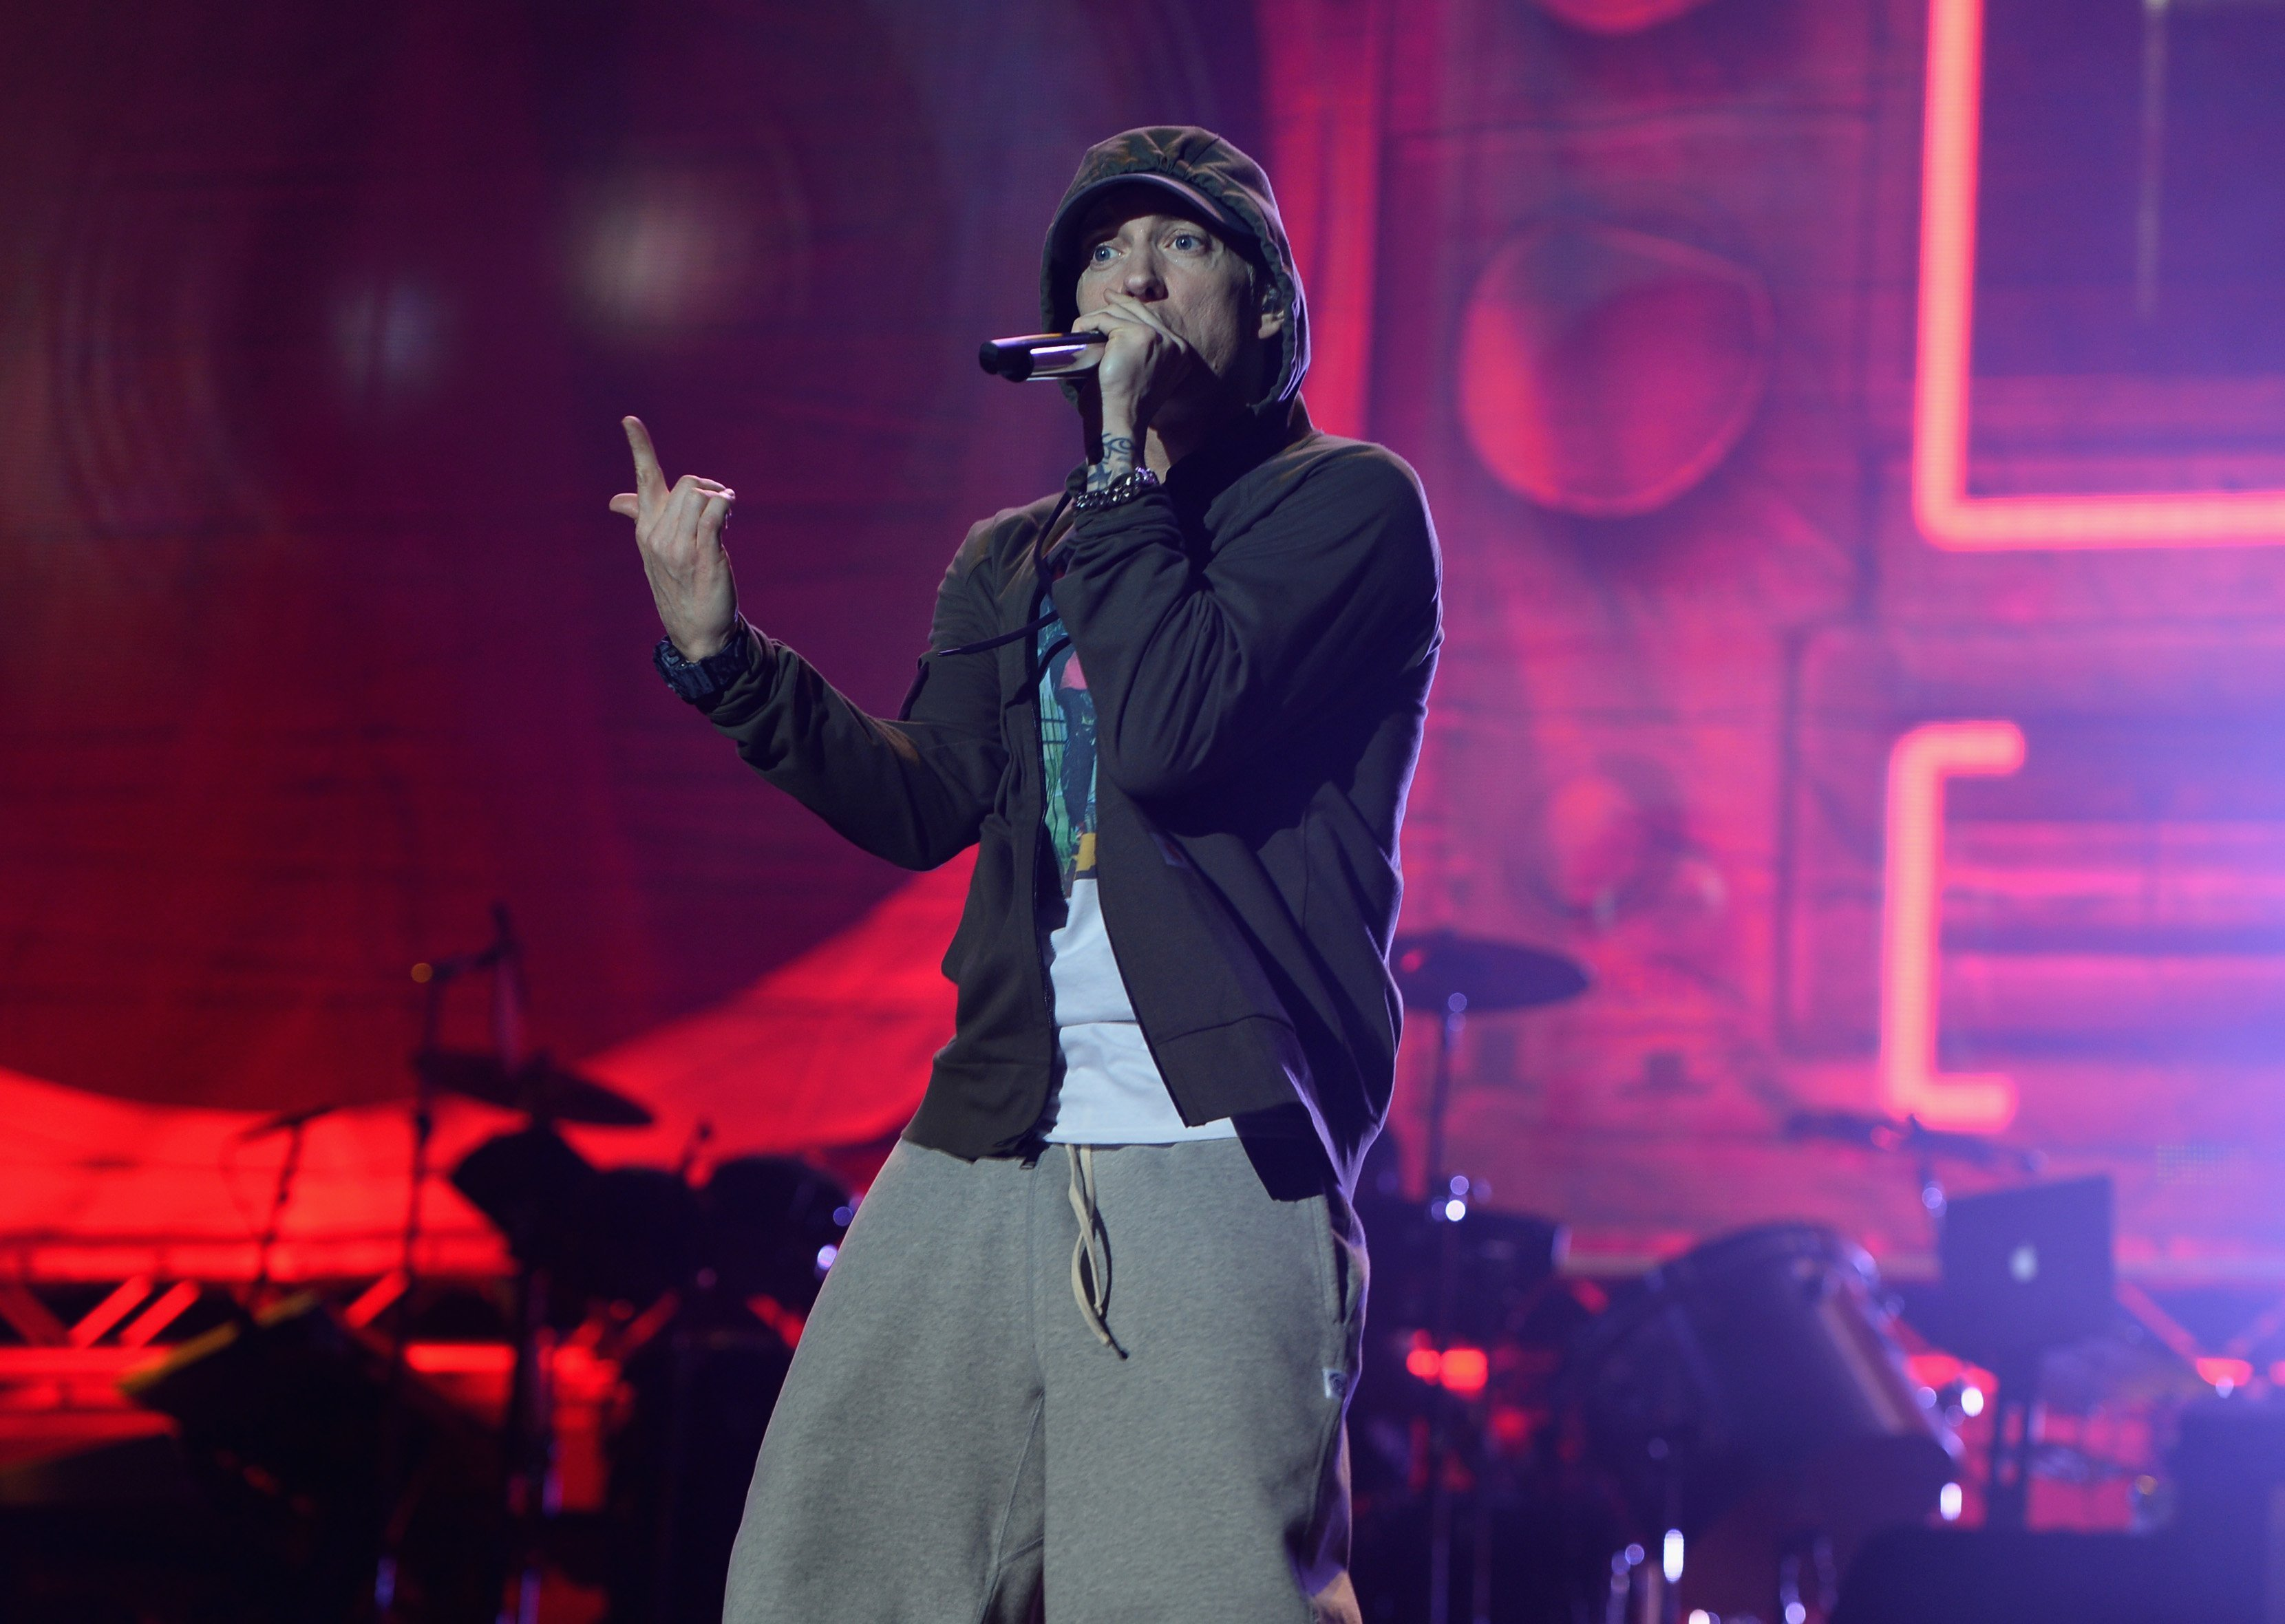 'Gunshot Sound Effect' Causes Panic at Eminem Gig""